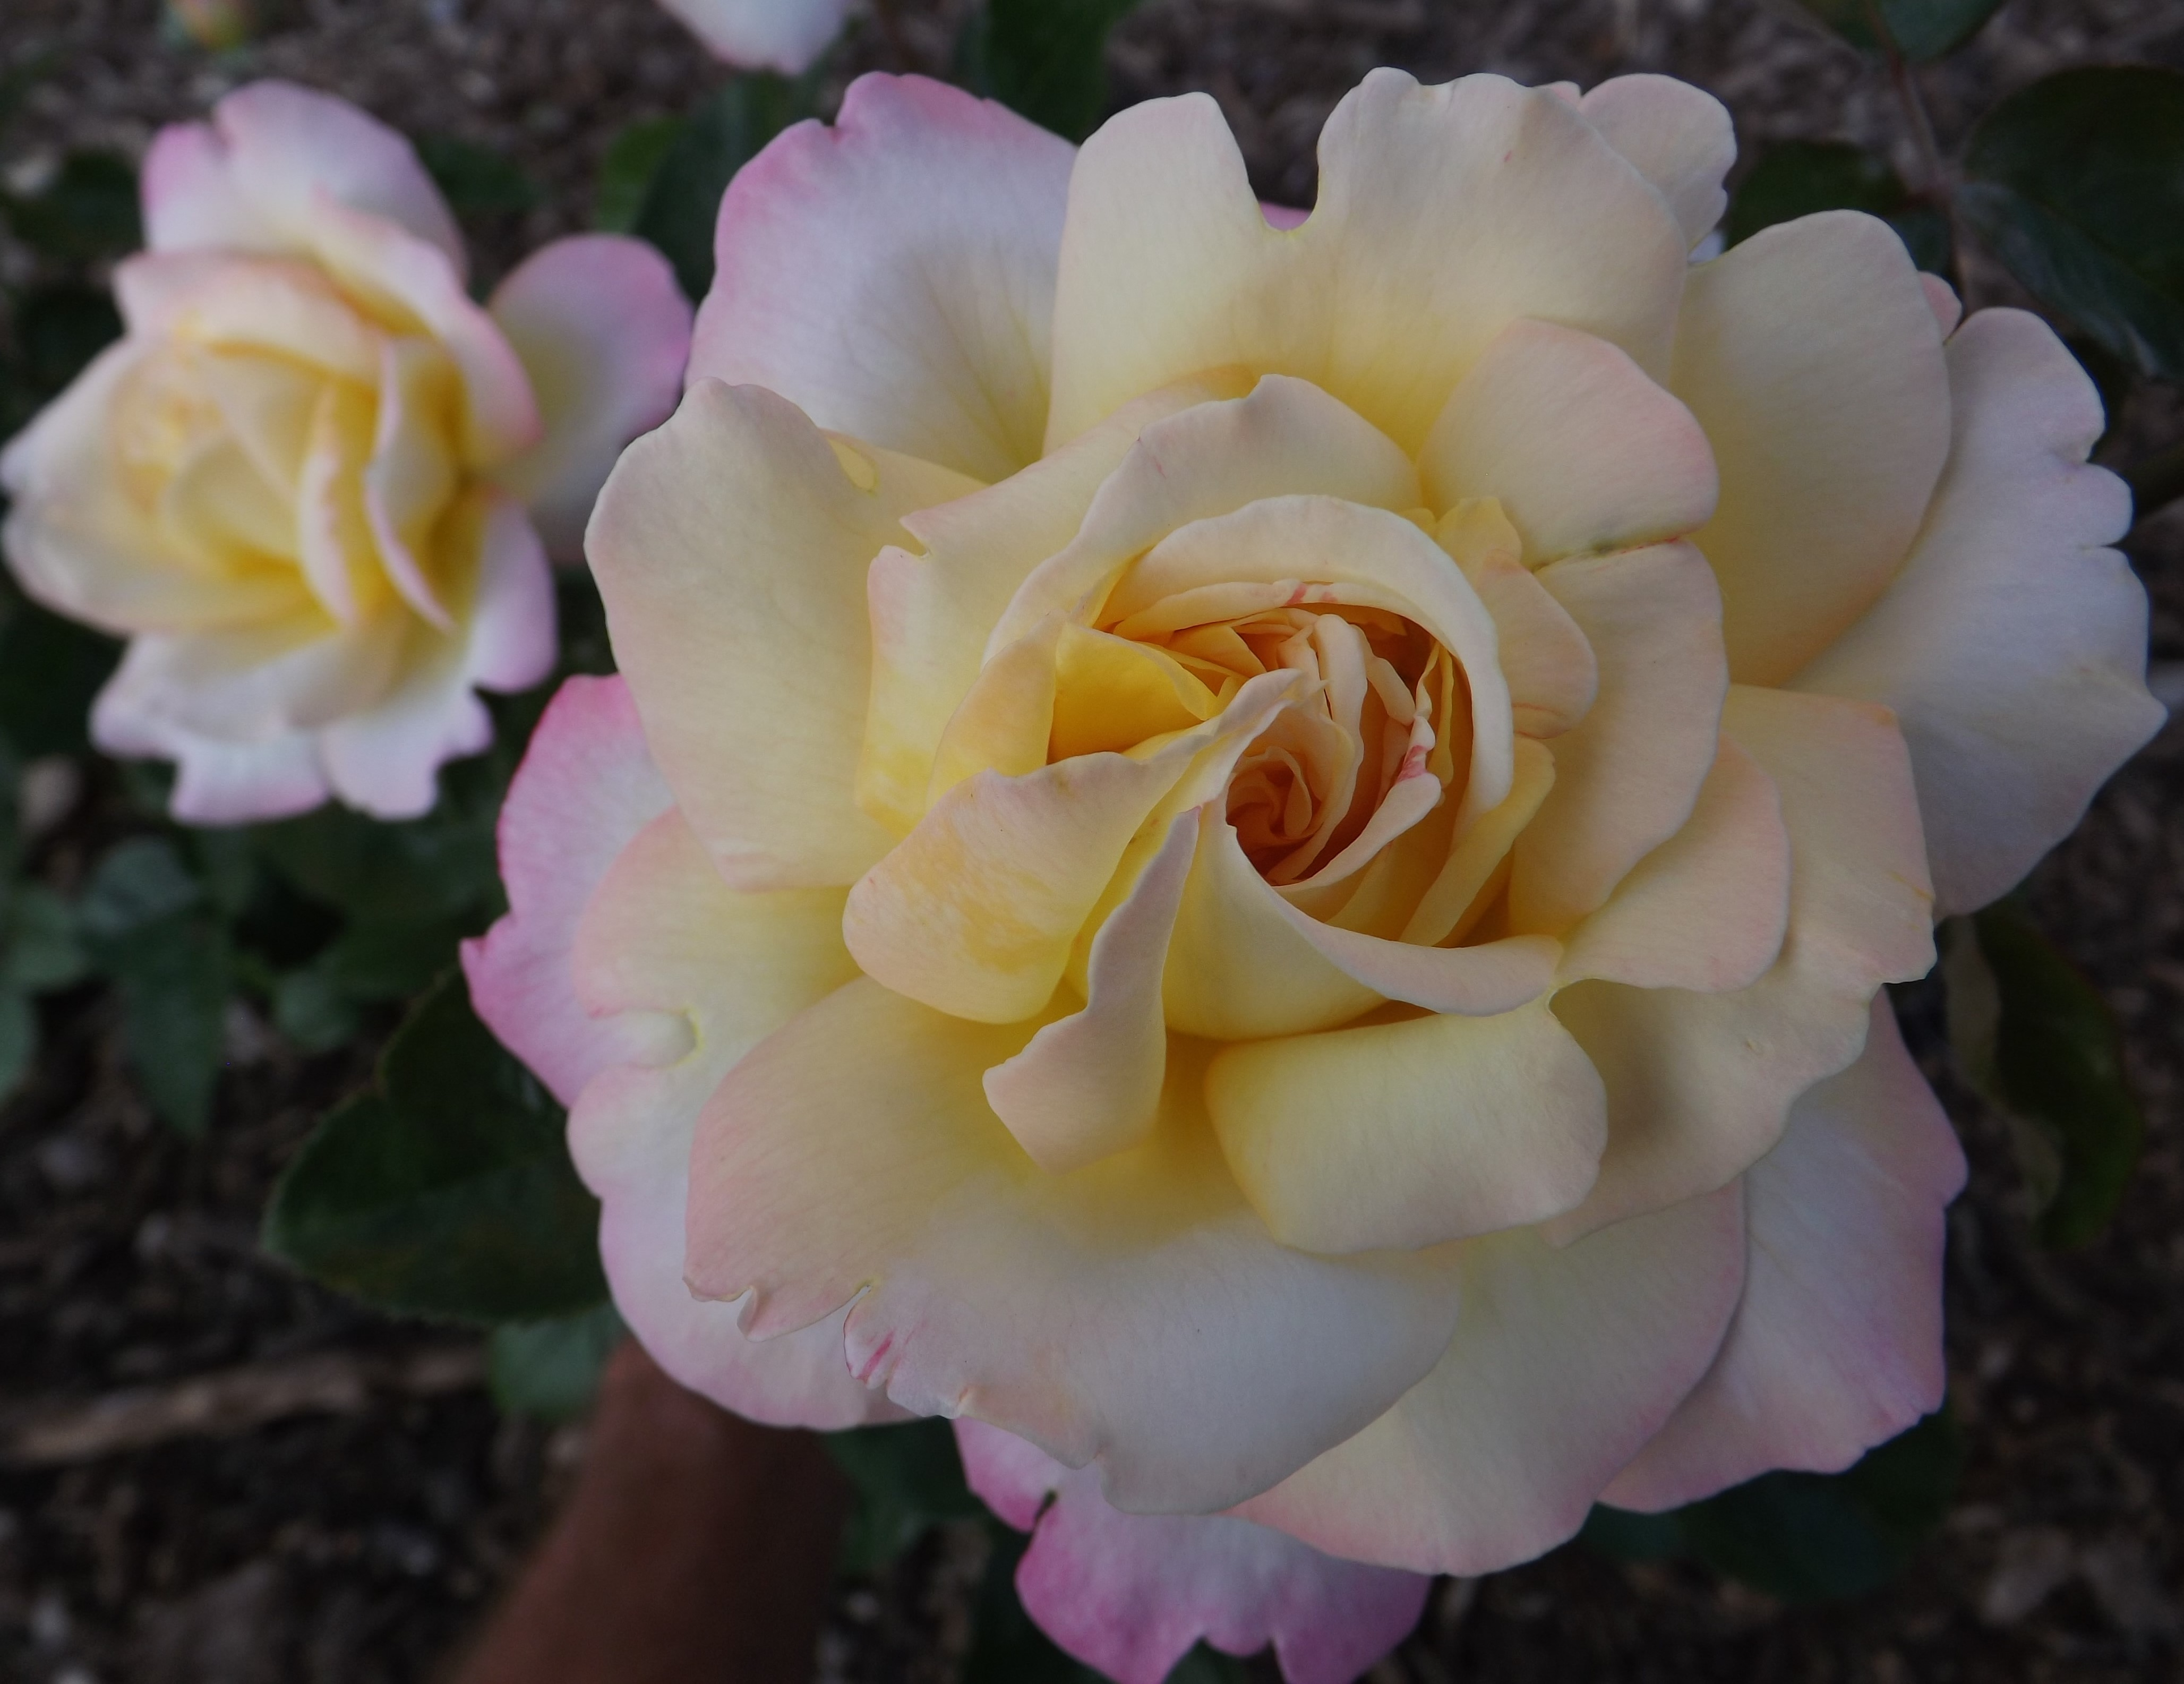 The Rose Garden I Never Promised Growing Together With Don Kinzler